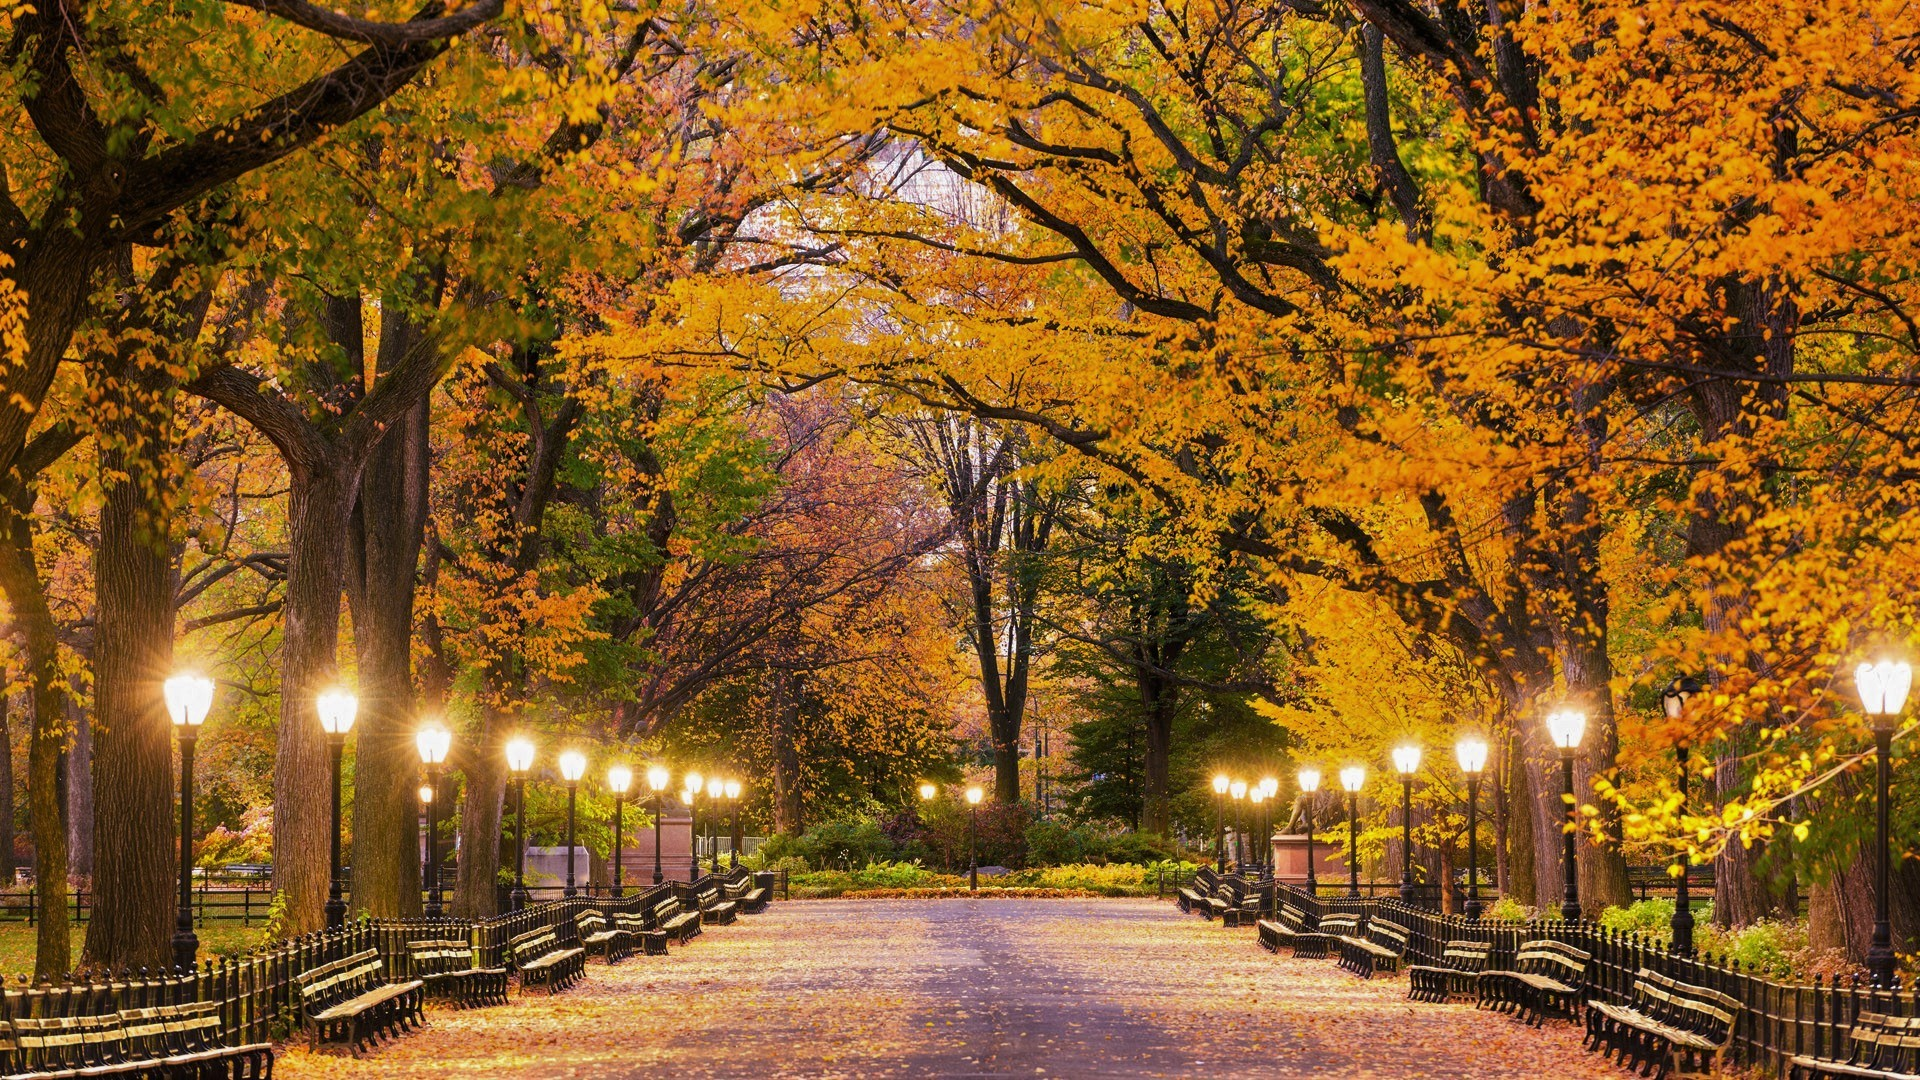 Central park in autumn hd wallpaper background image for Central park wallpaper